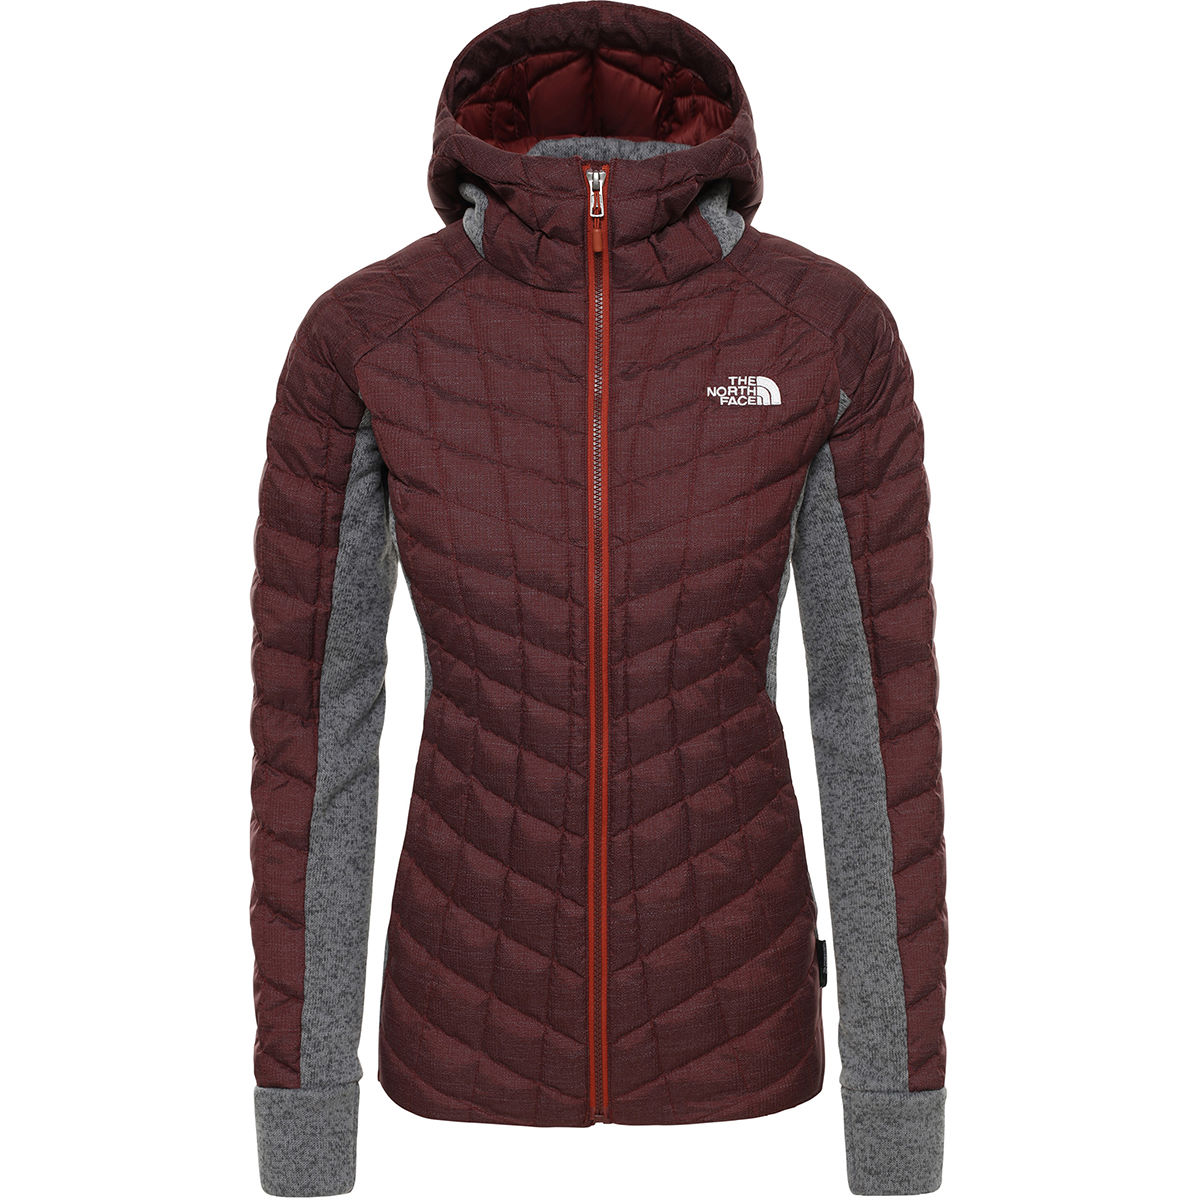 The North Face The North Face Women's ThermoBall™ Gordon Lyons Hoodie   Jackets